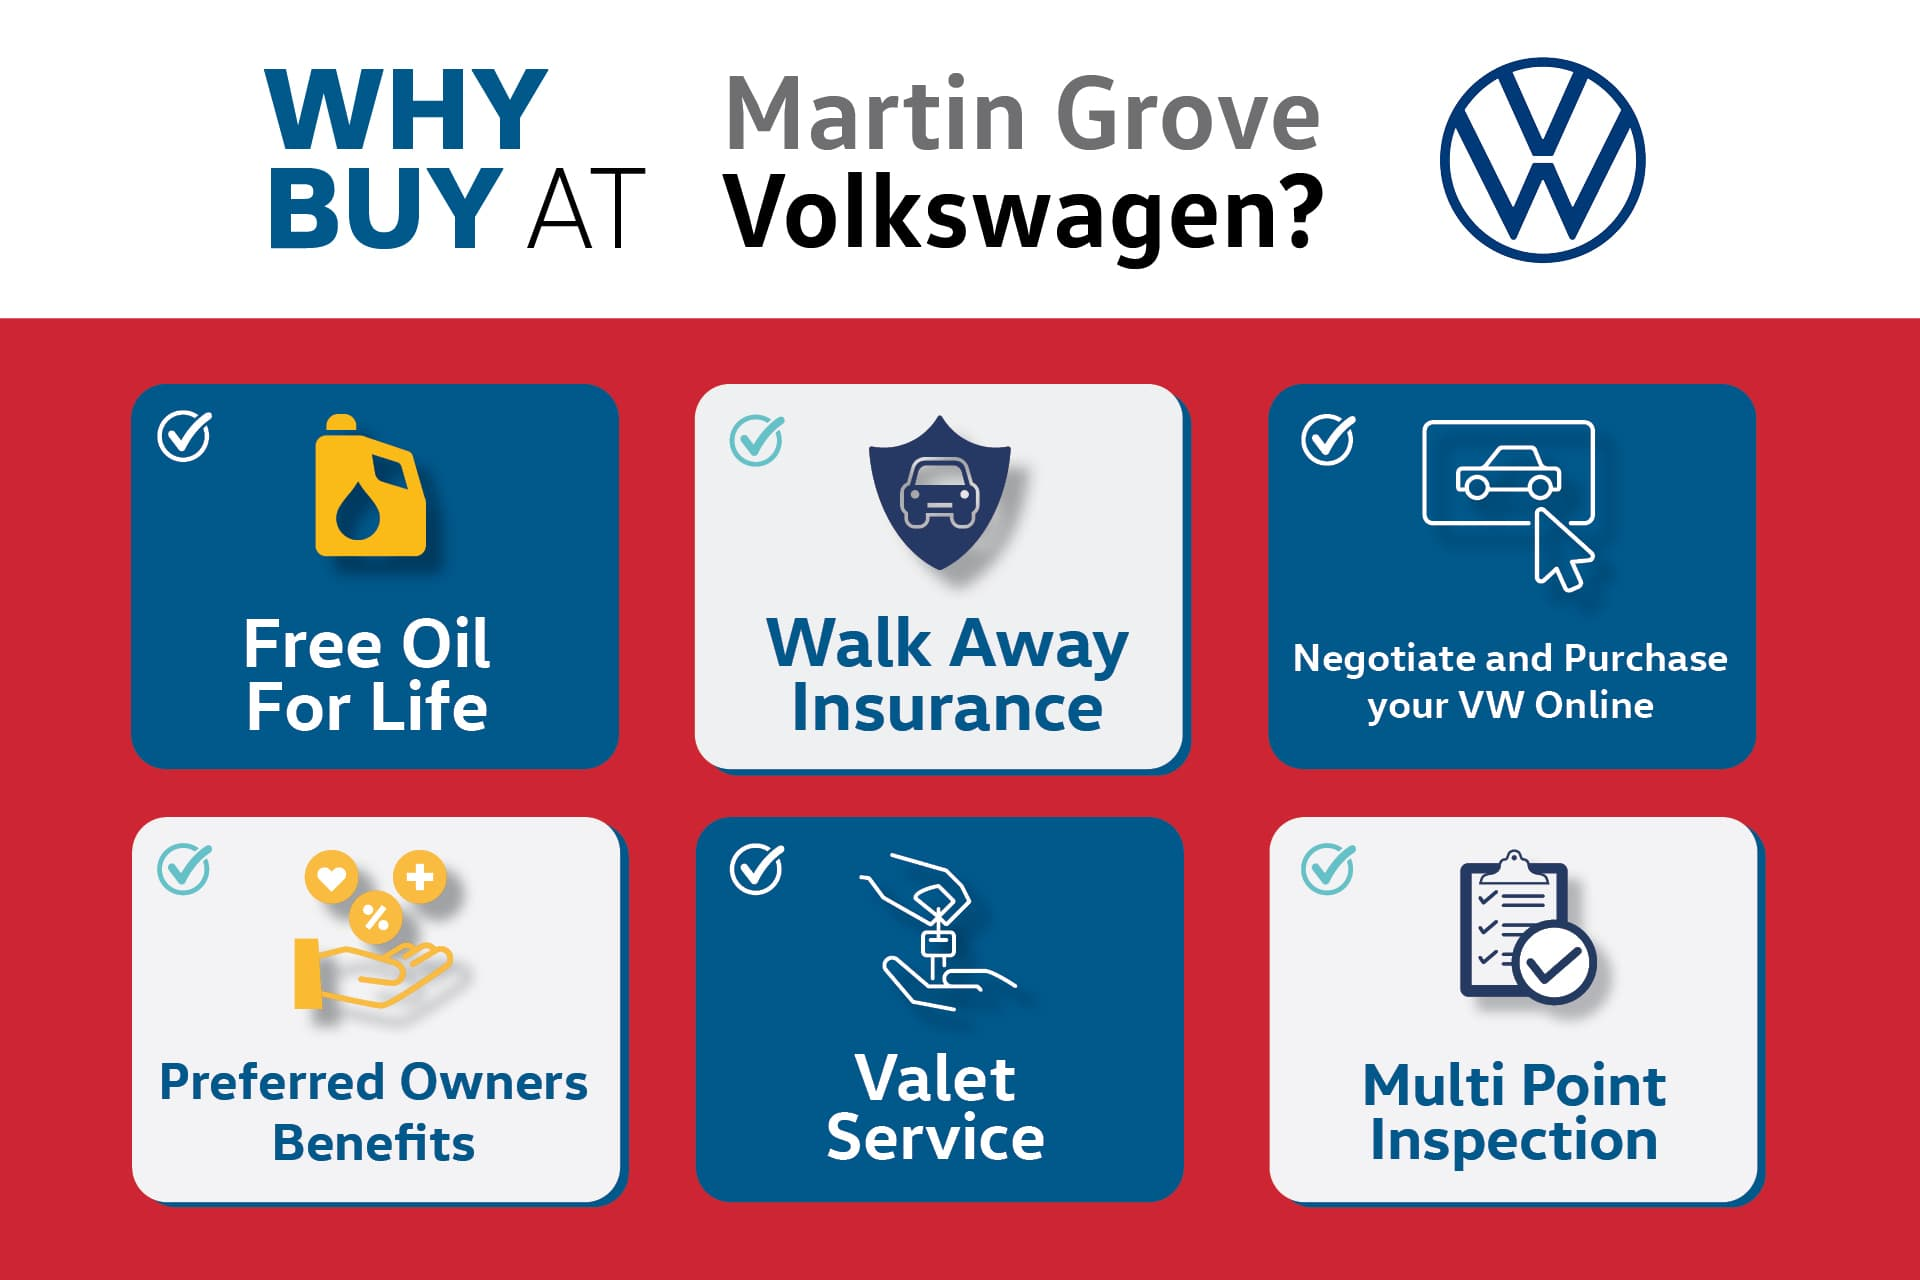 584a 21 Martin Grove Vw Mobile Banners13 (1)